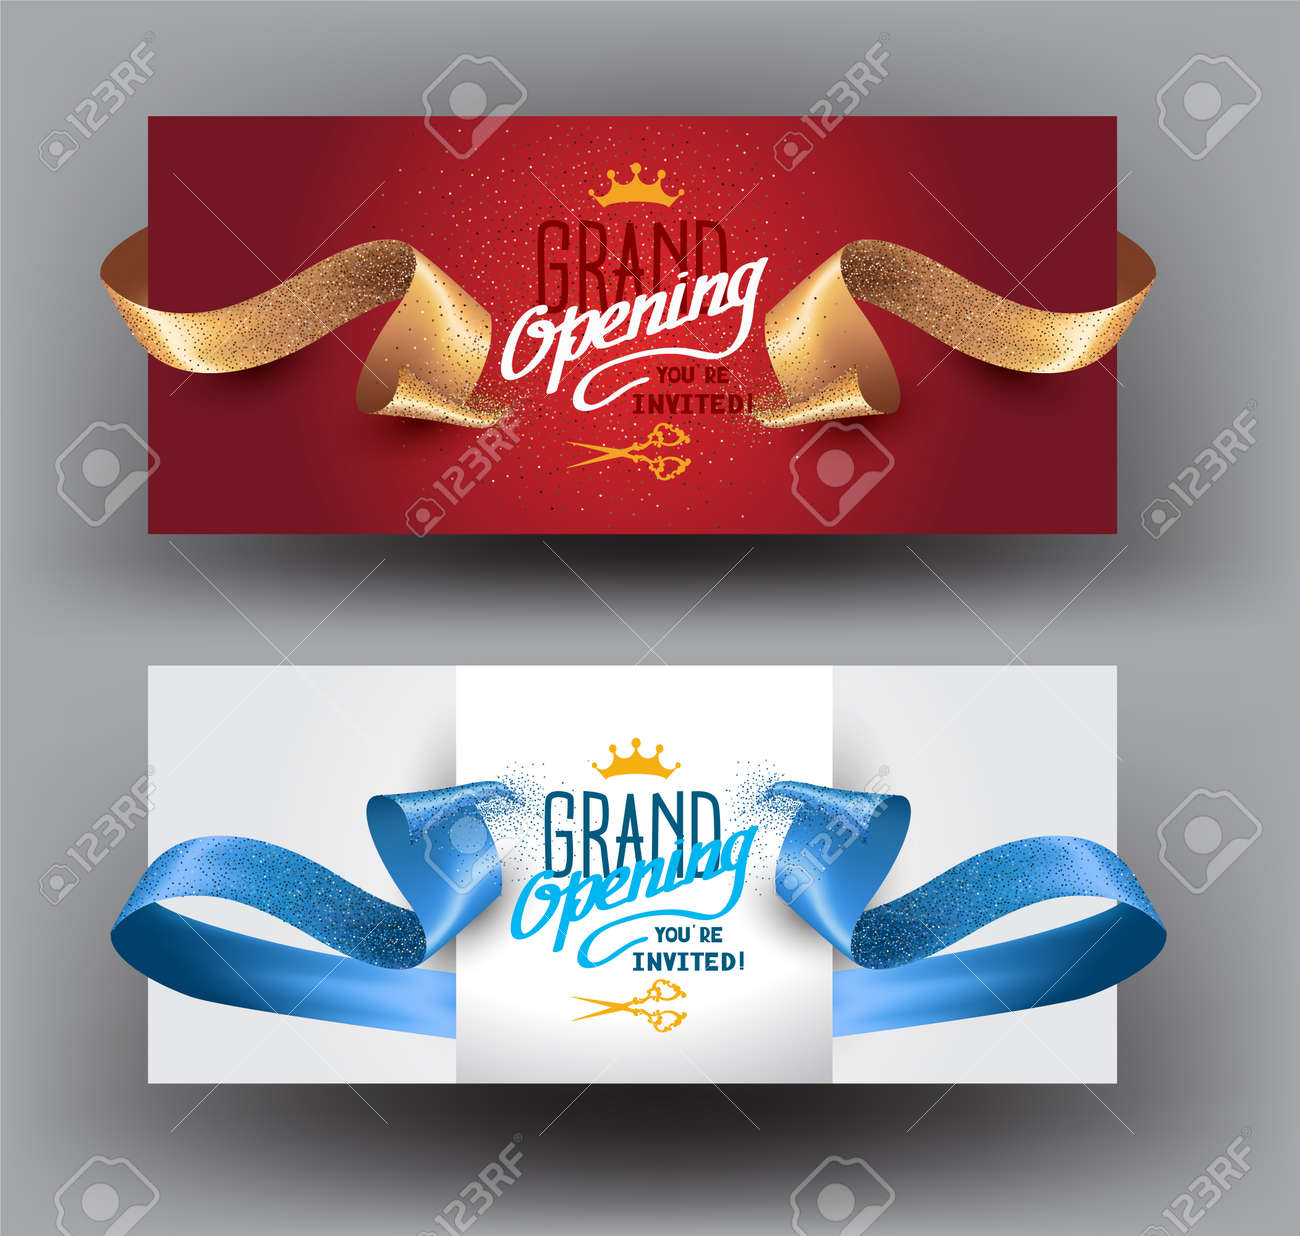 Grand opening background with curly cut ribbons. Vector illustration - 81650076